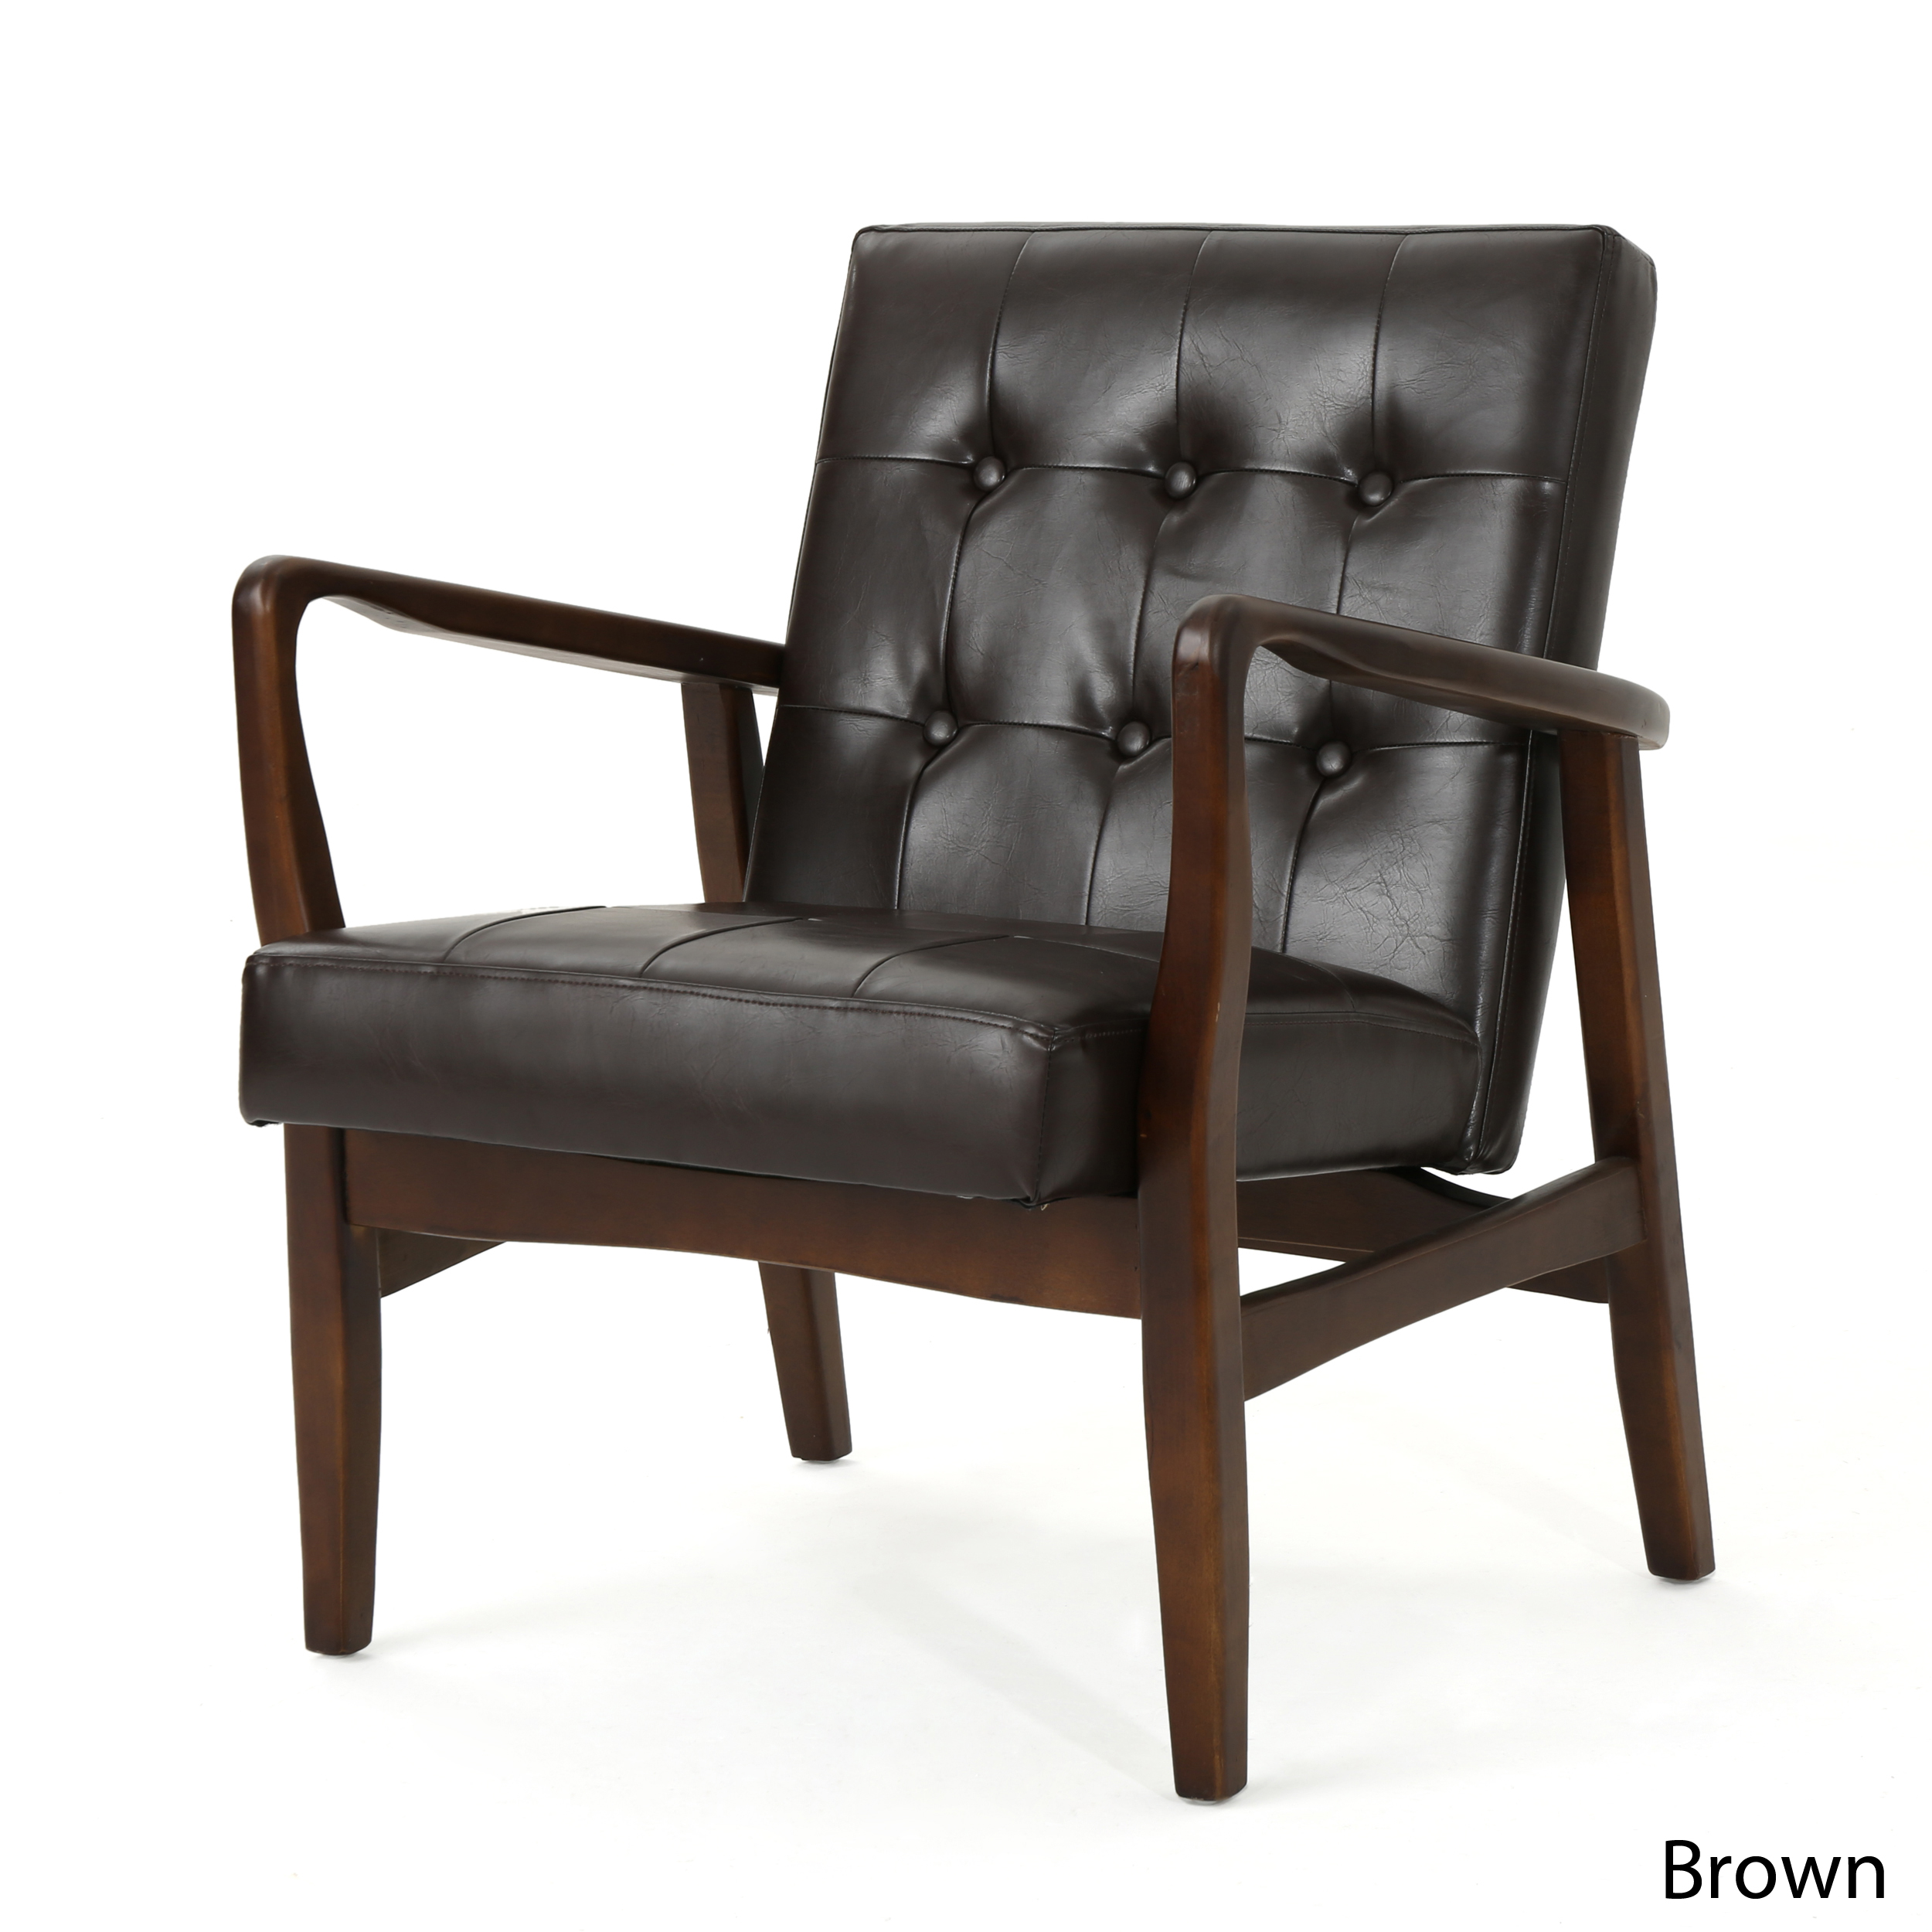 Details about Marcola Mid Century Modern Faux Leather Club Chair with Wood  Frame